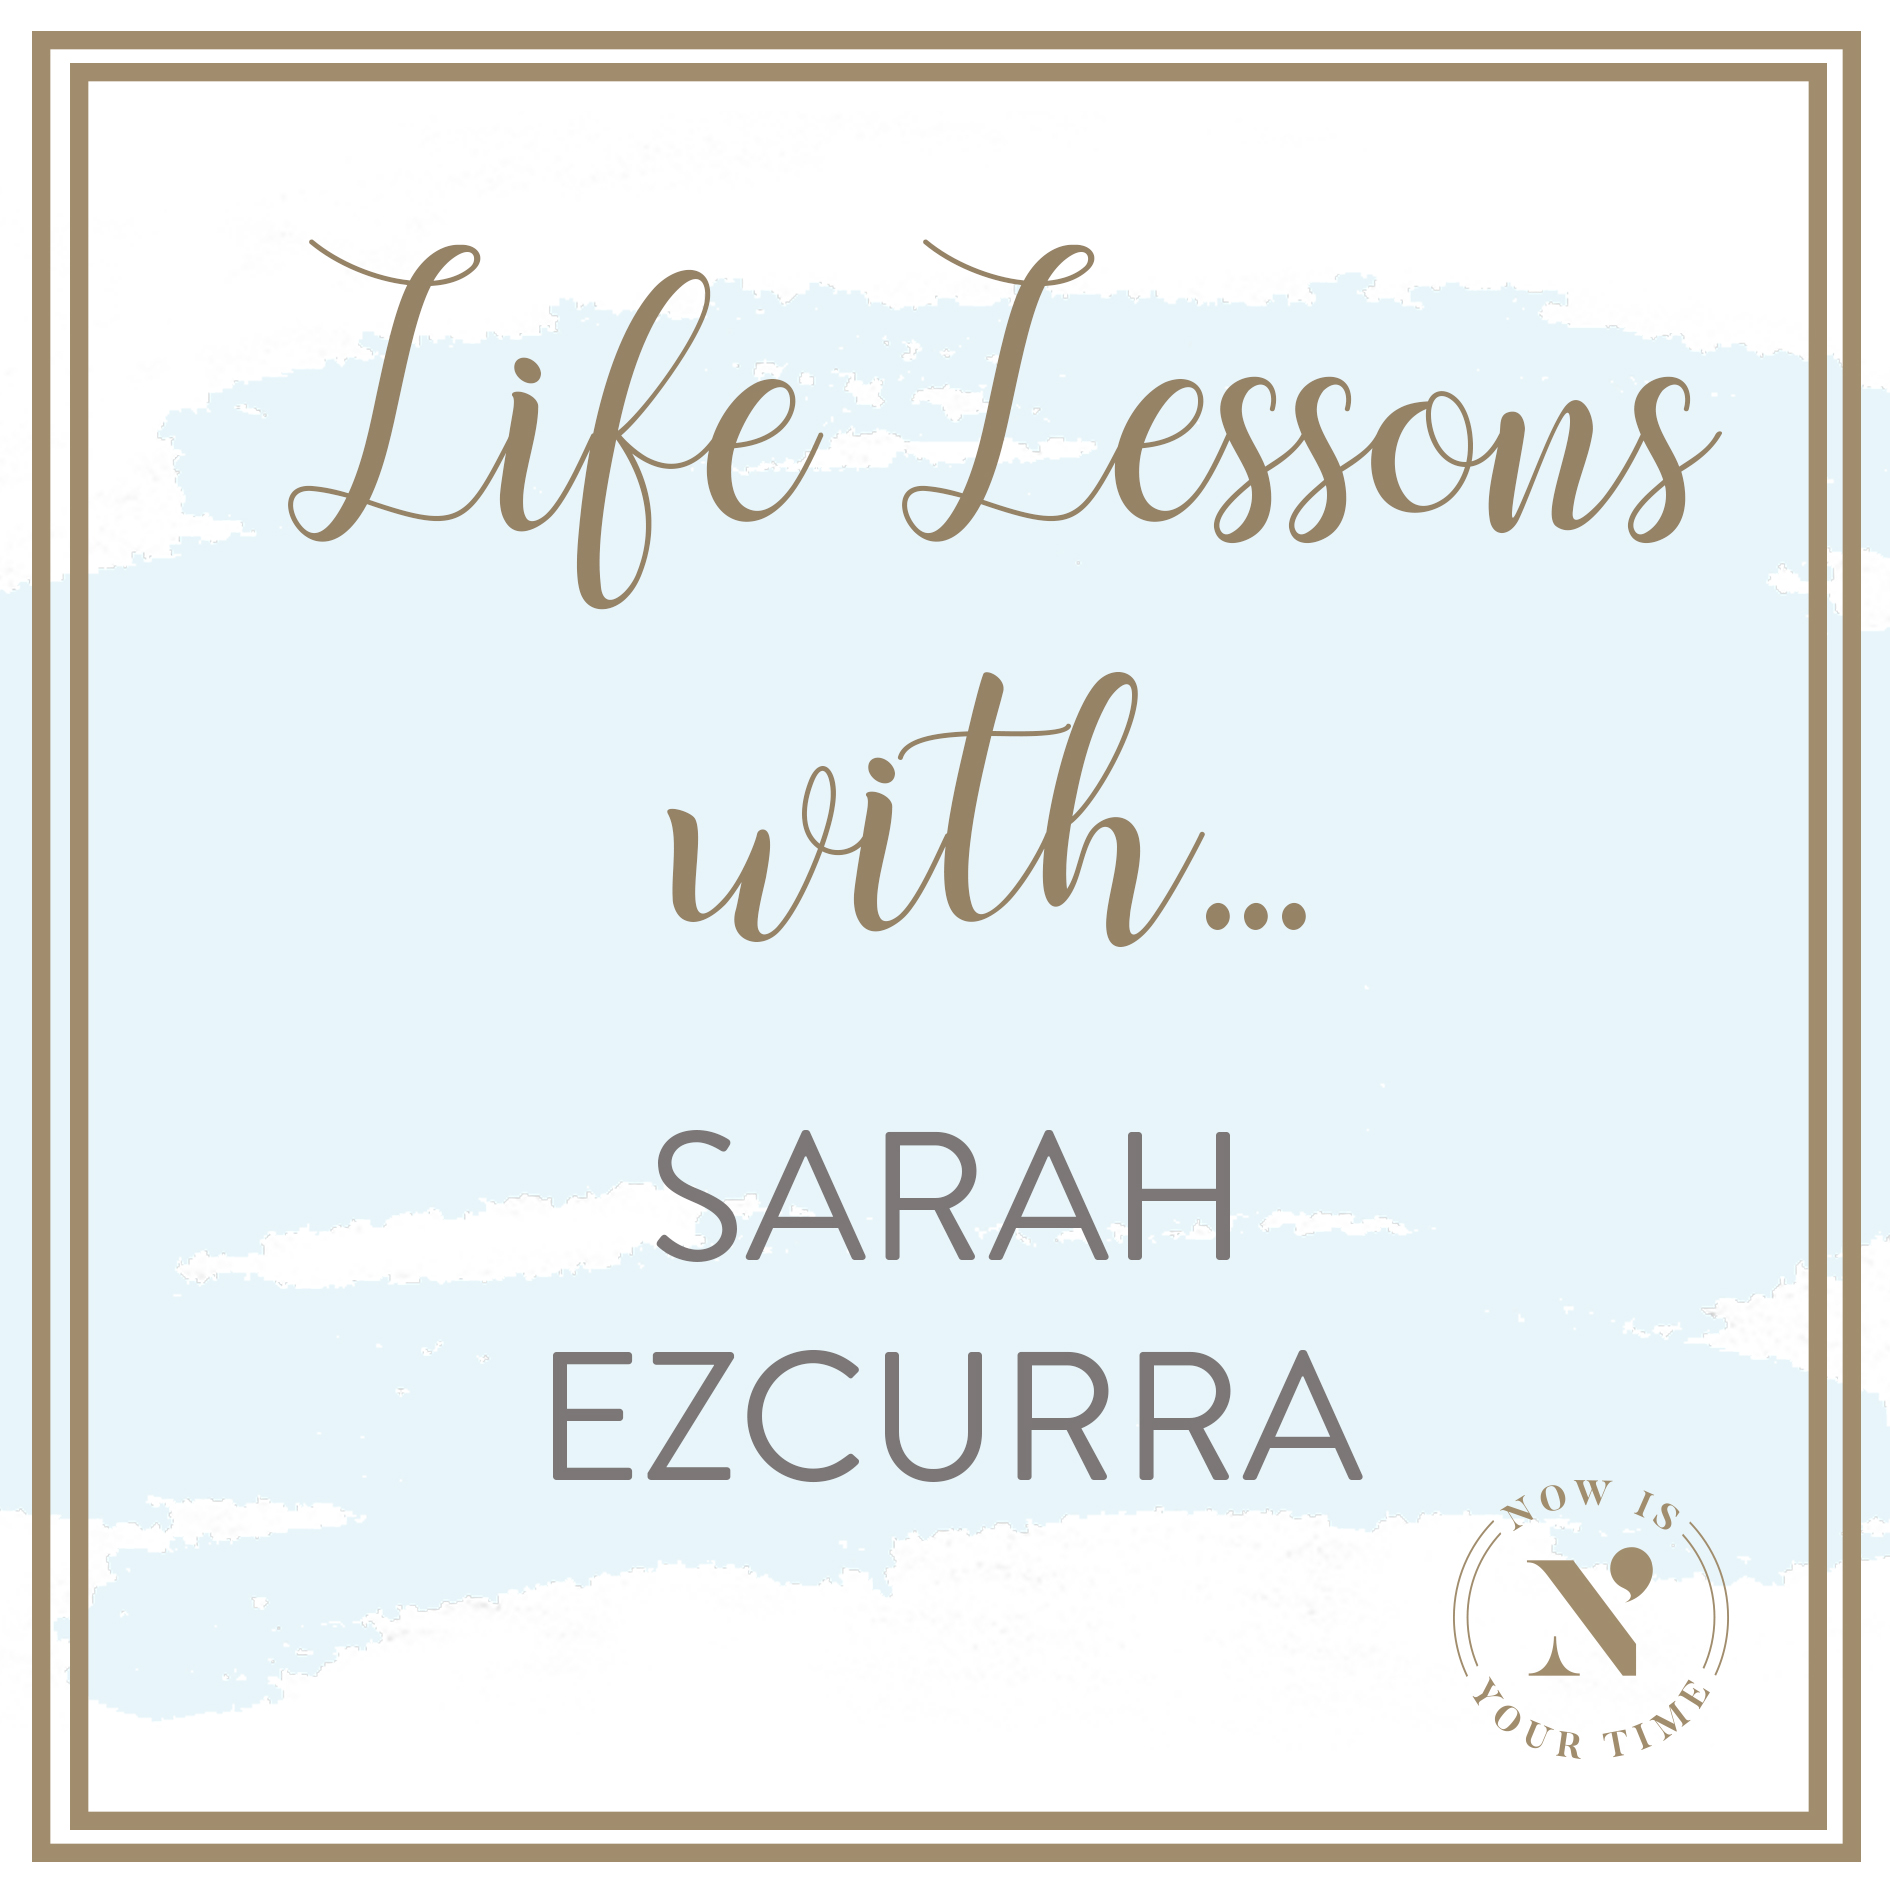 Life Lessons with podcast artwork - episode 1 Sarah Ezcurra.jpg